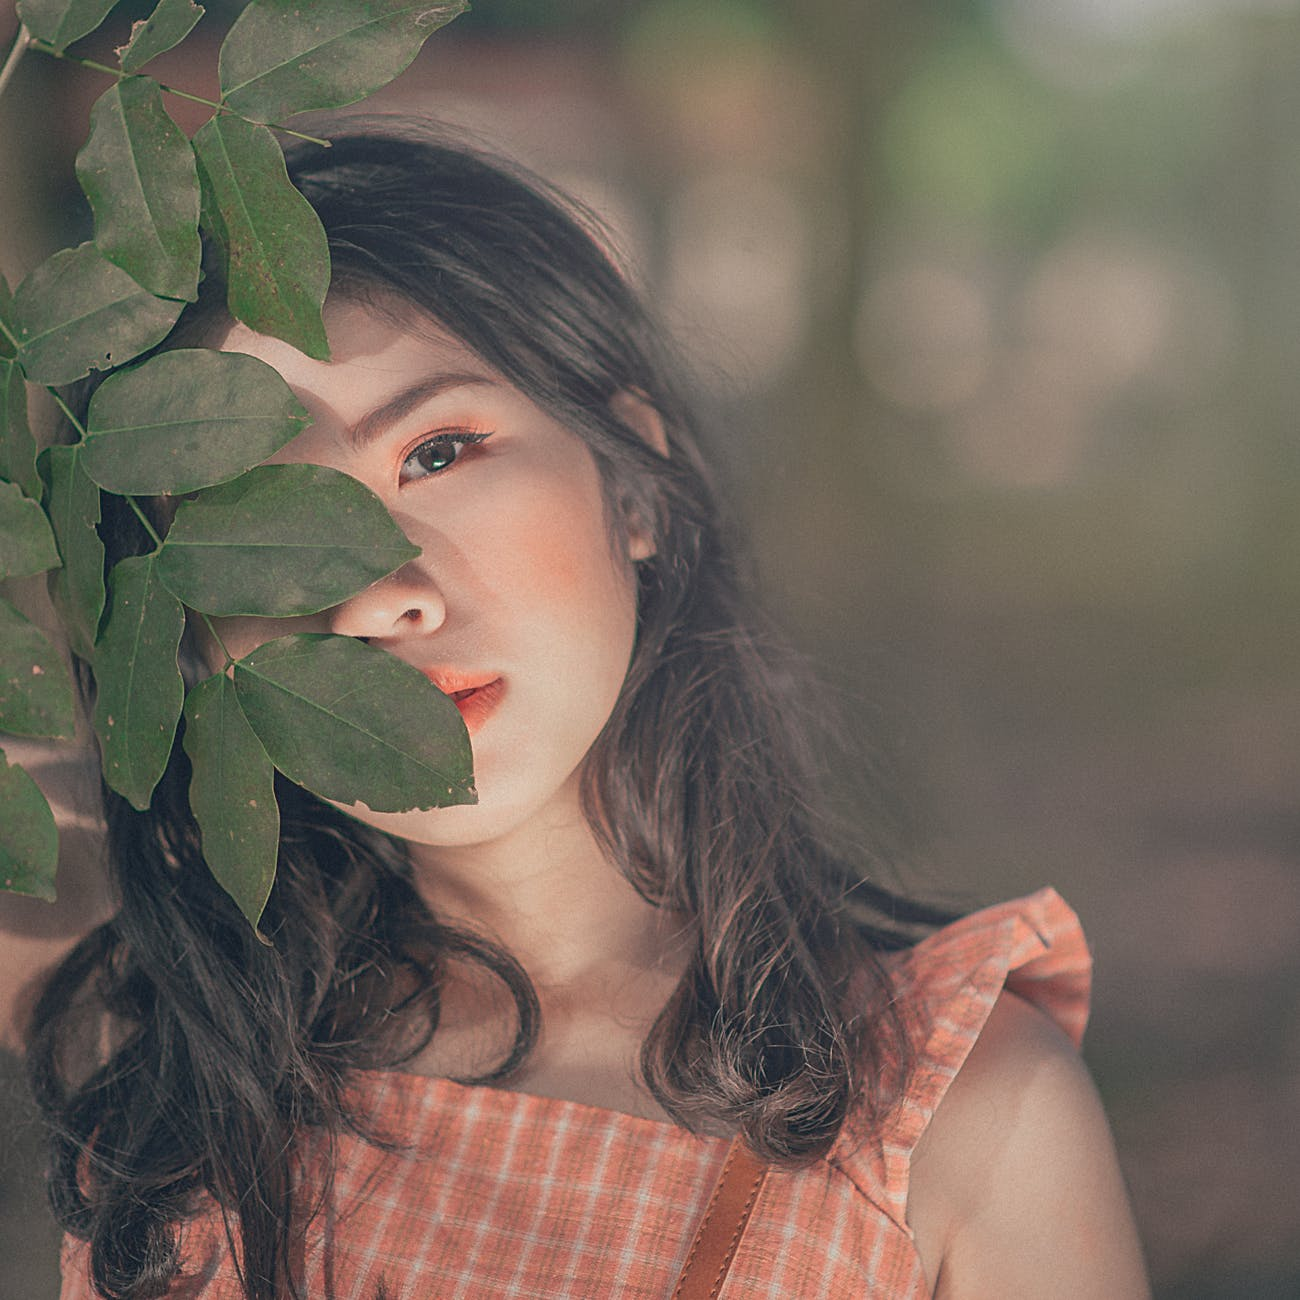 Selective focus photography of woman in orange sleeveless top hiding face behind tree's leaf